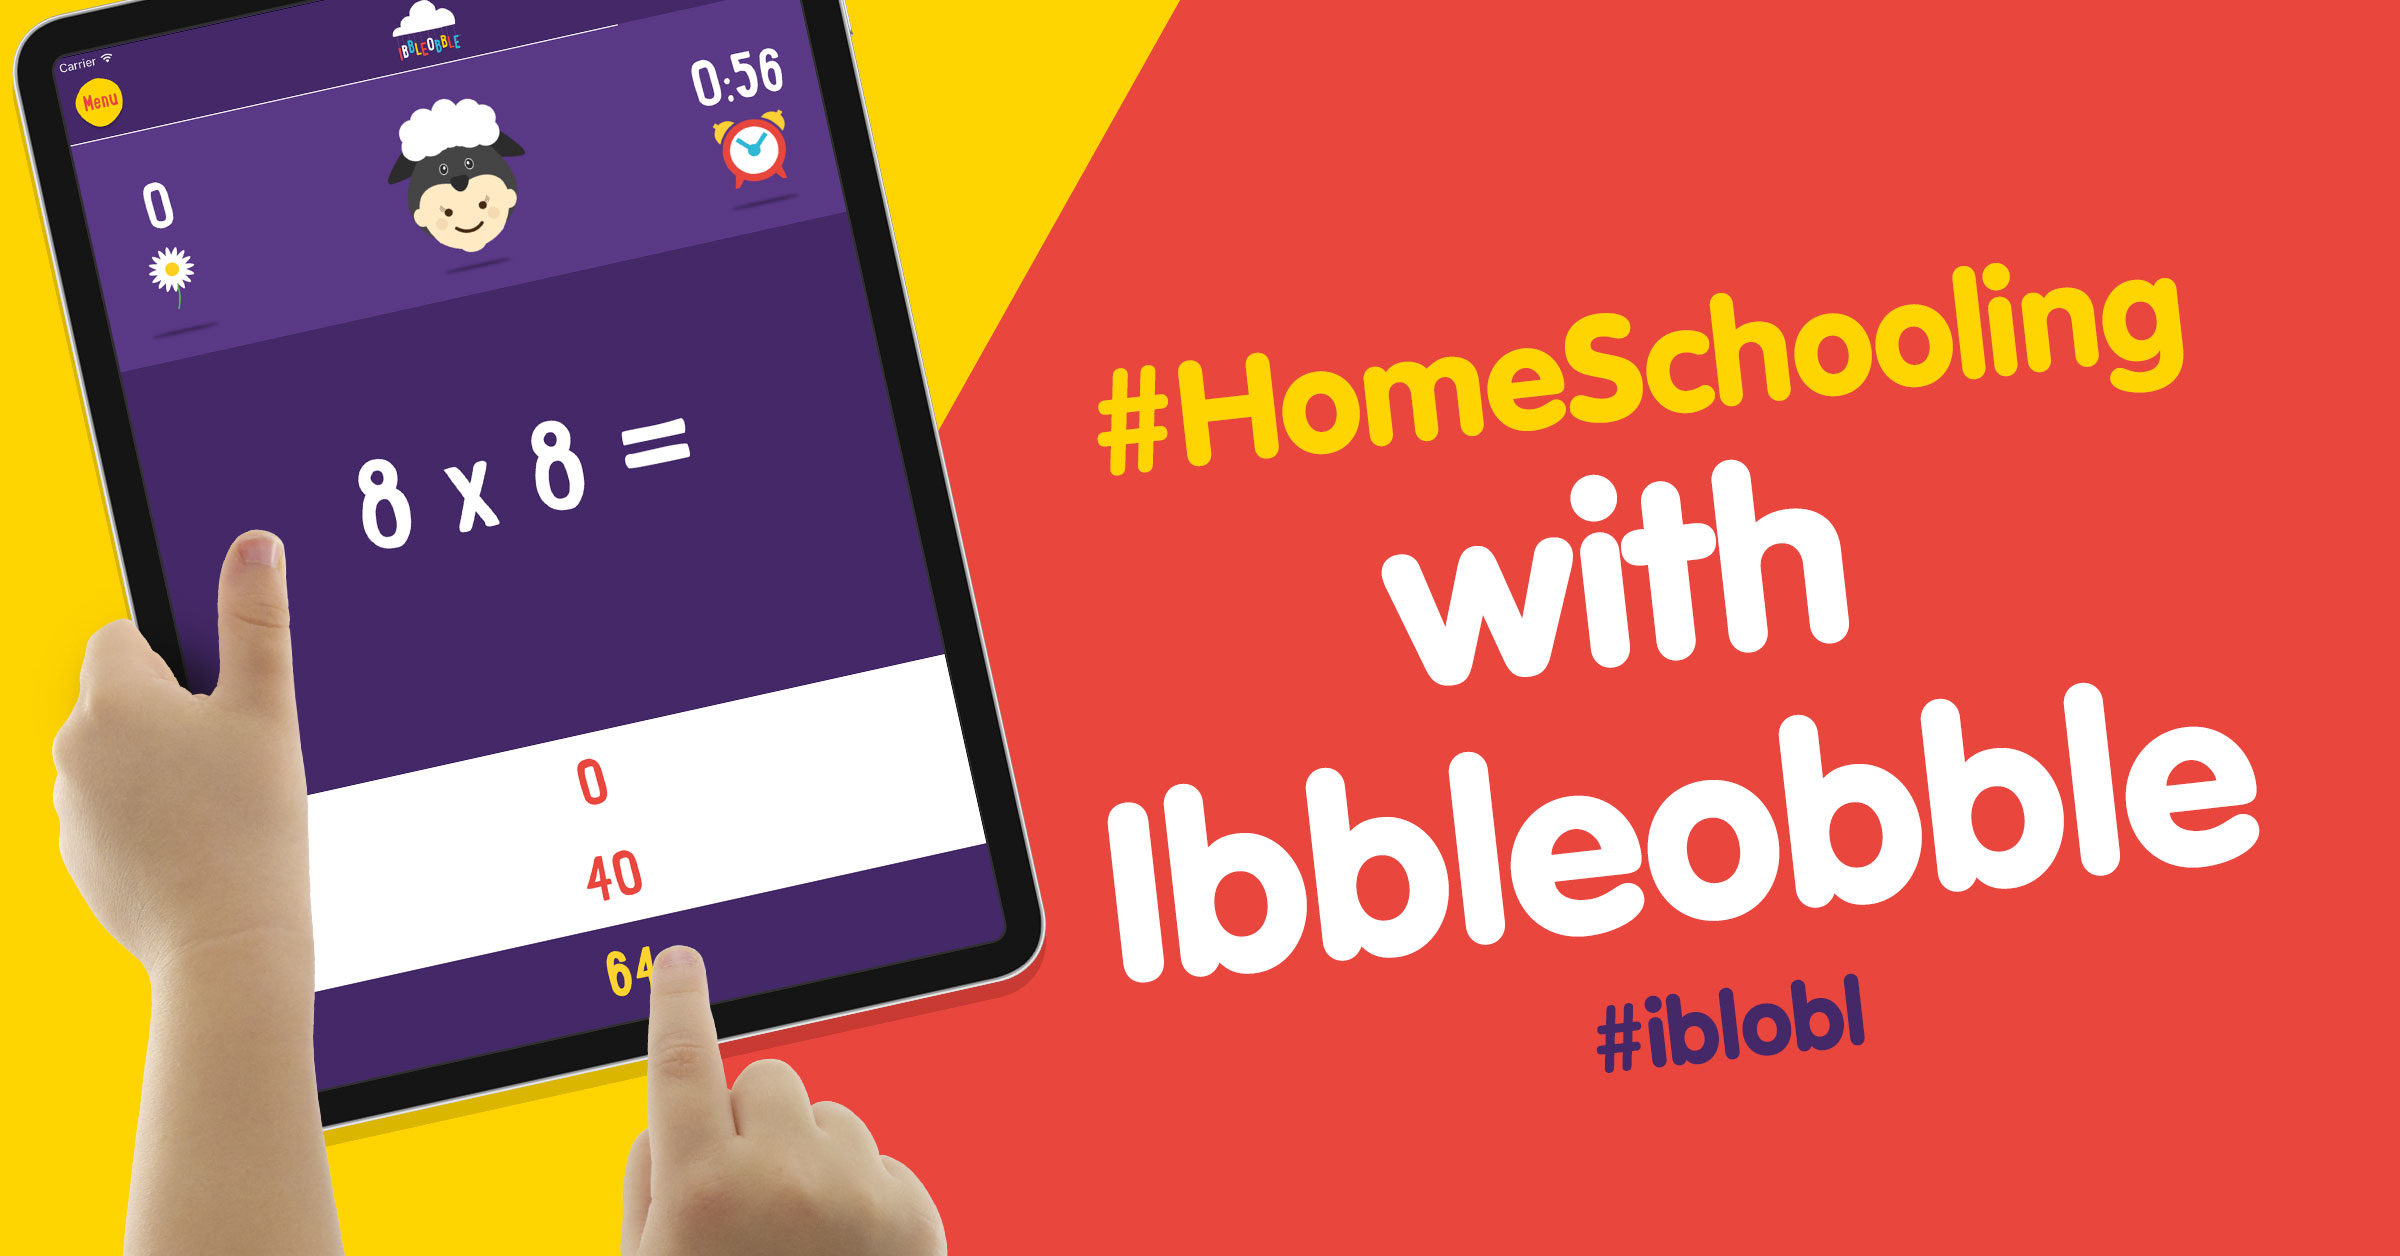 Home Schooling Resources - Ibbleobble